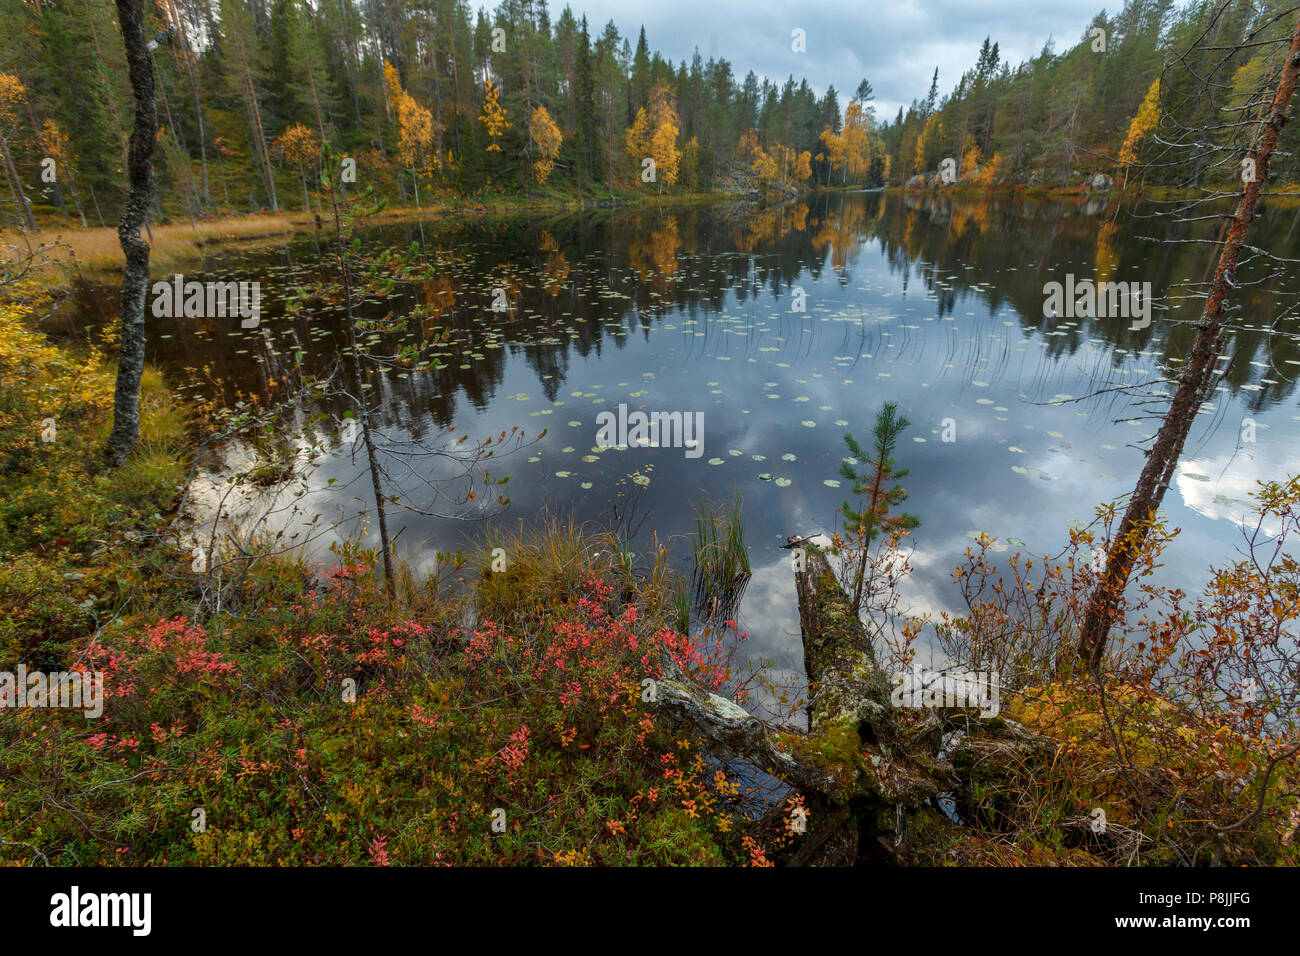 lake in Hossa, Finland - Stock Image